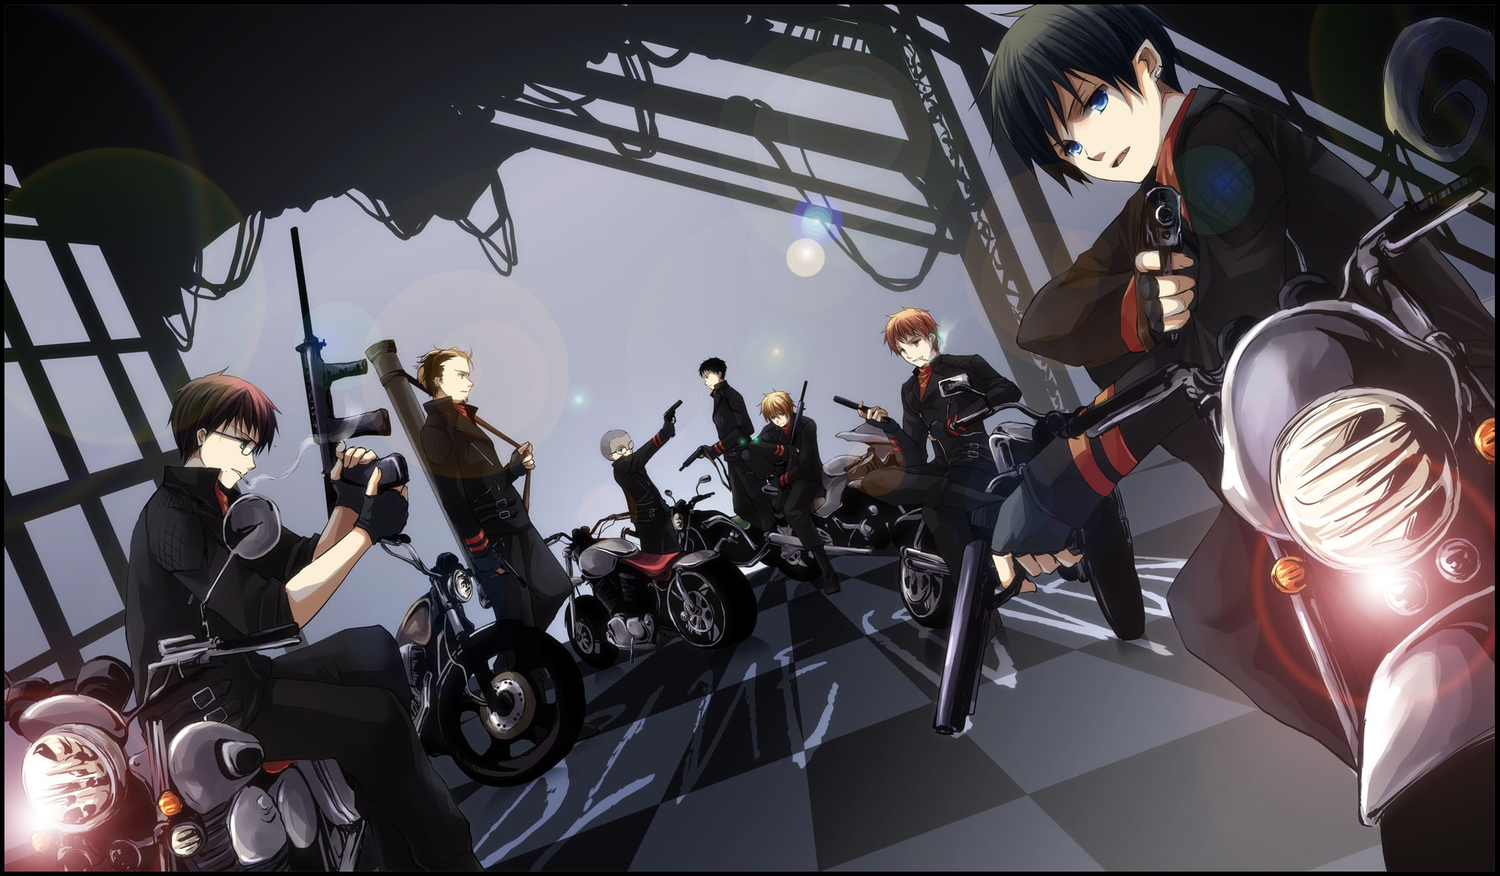 Hd Wallpaper Ao No Exorcist Black Suit Character 0003